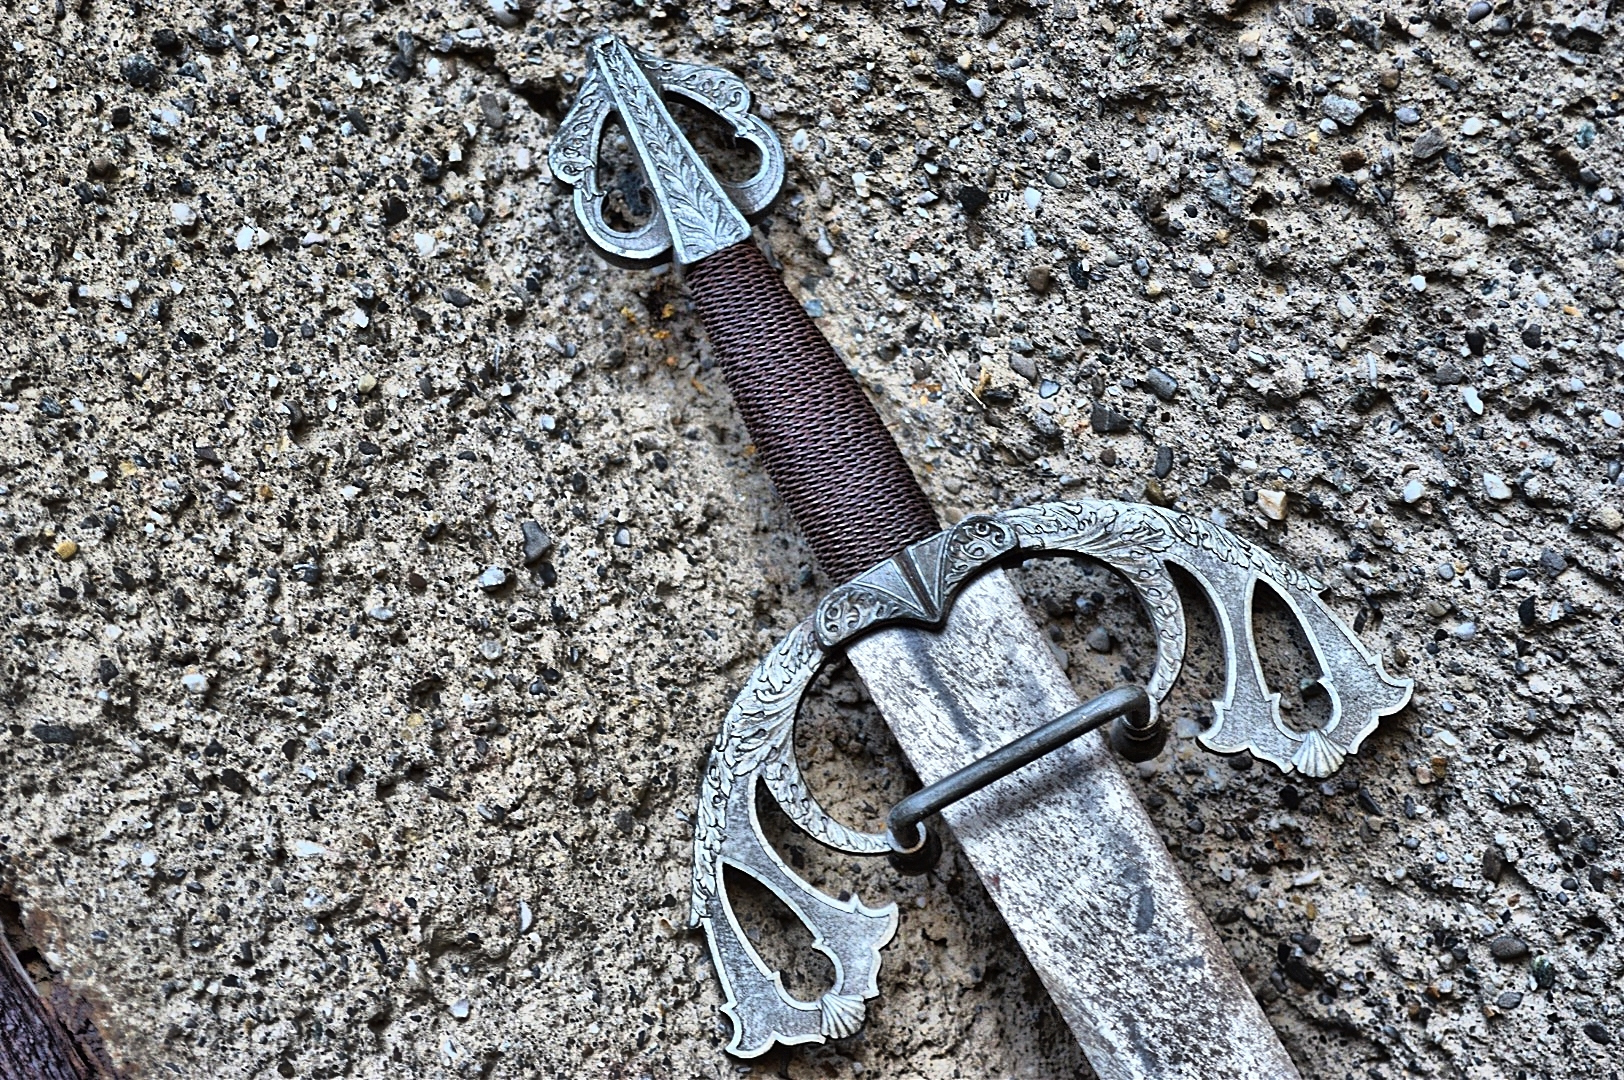 Close-Up Of Sword On Wall. An eight-year-old in Sweden recently discovered a 1,500-year-old sword at the bottom of a lake. (Photo by Alexandar Kling/EyeEm/Getty Images)